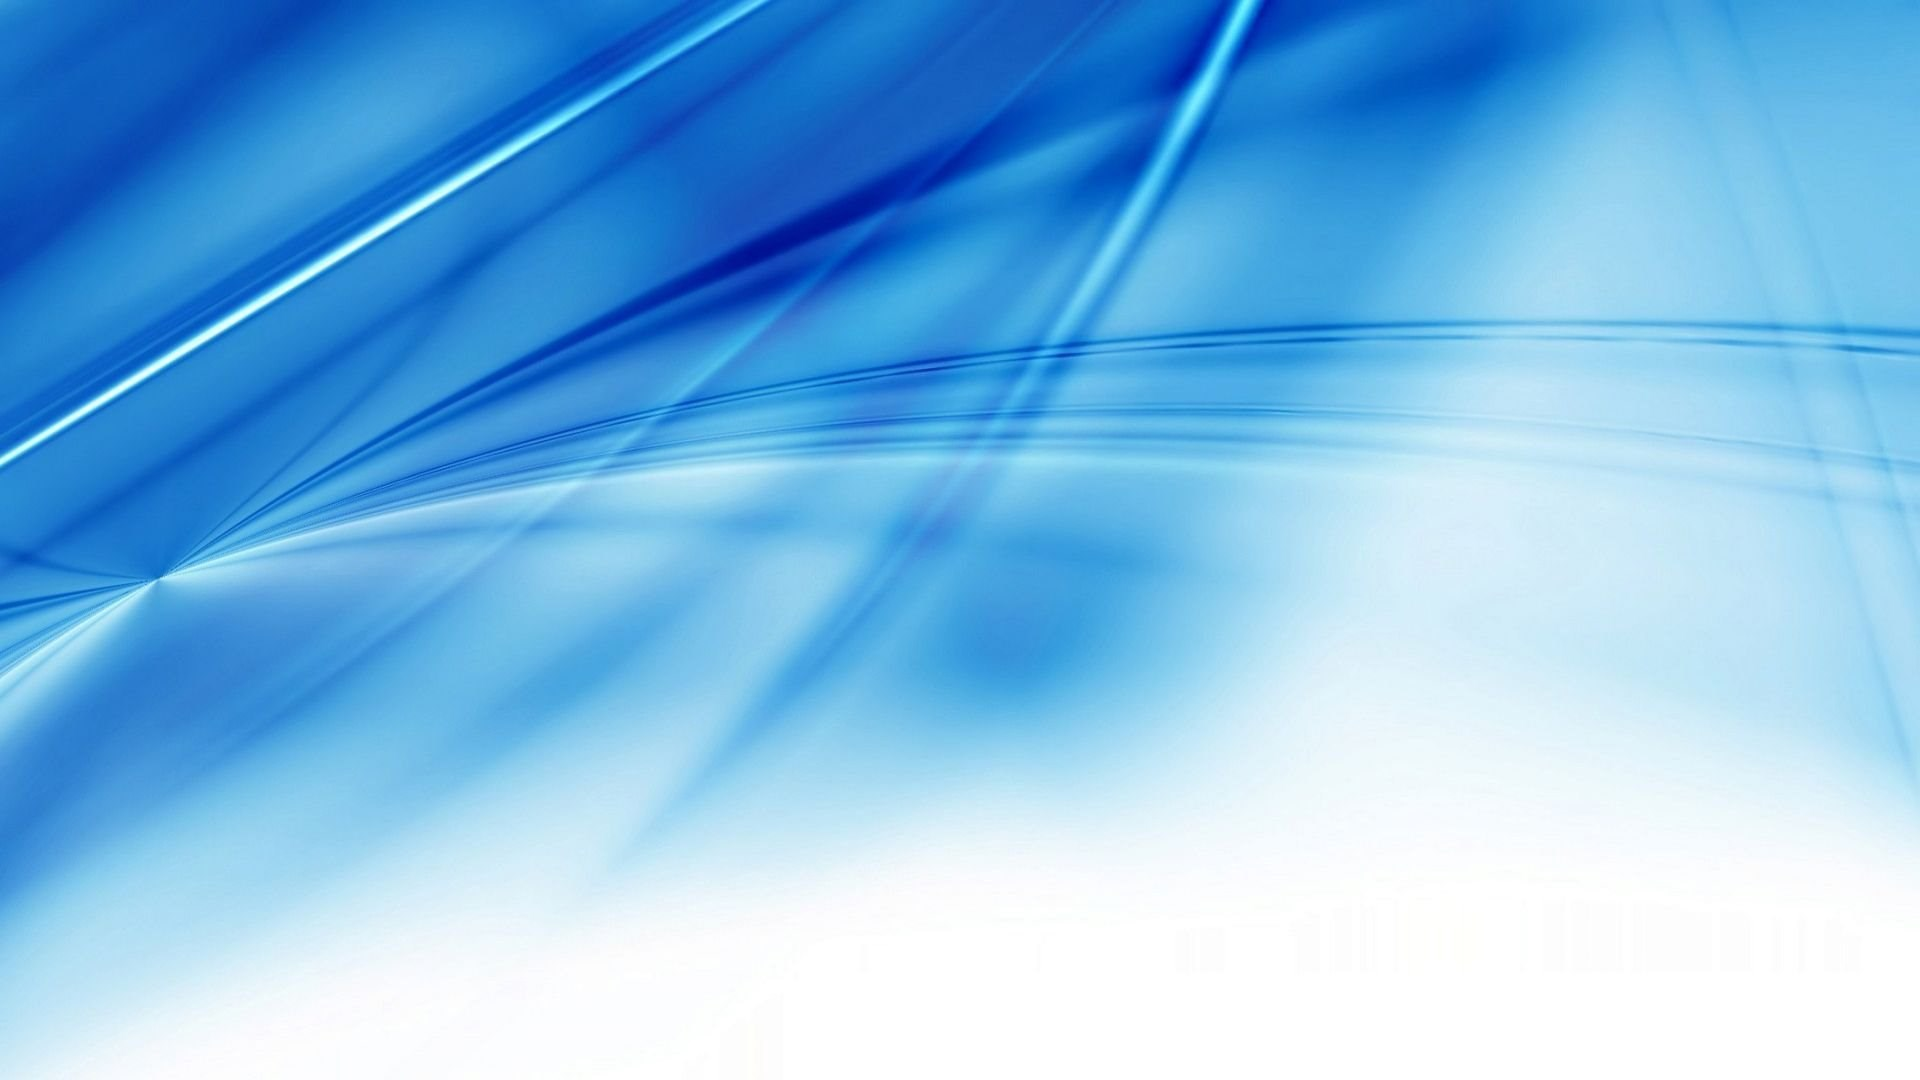 Blue And White Backgrounds Wallpapers Desktop Background